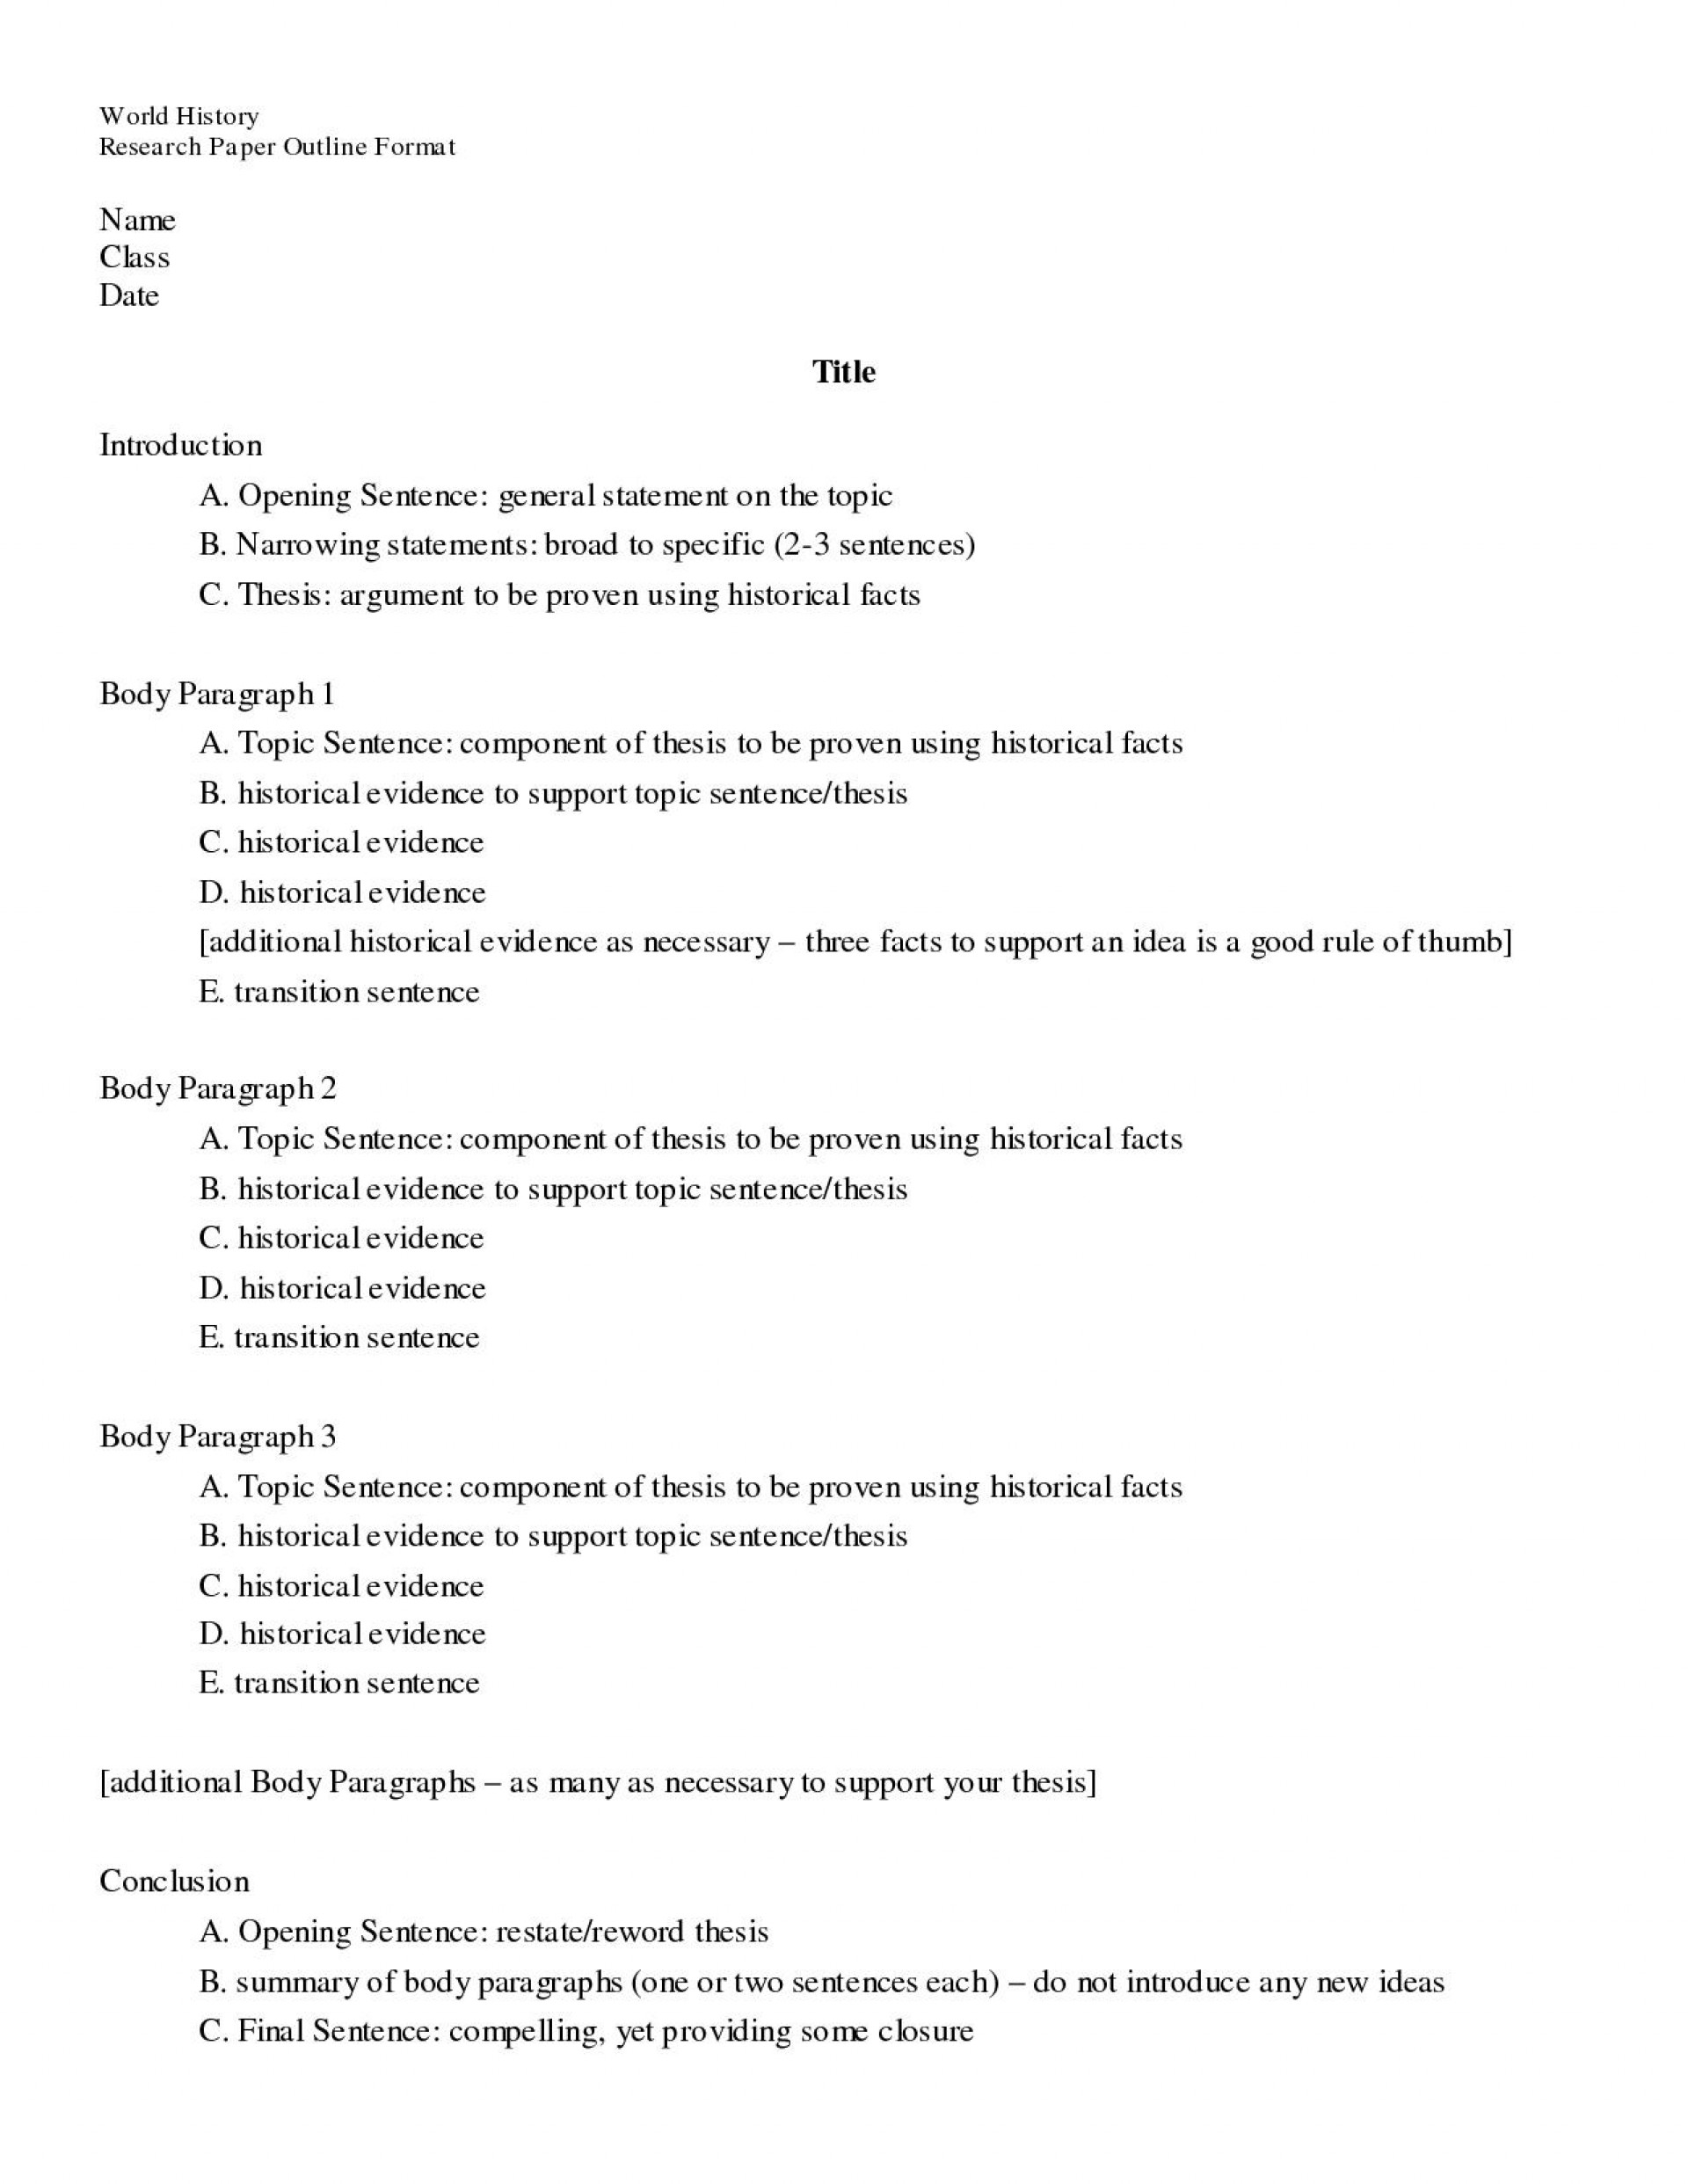 012 Outline Image1 Sample Outlines For Researchs Awful Research Papers Writing Example Apa Format 1920